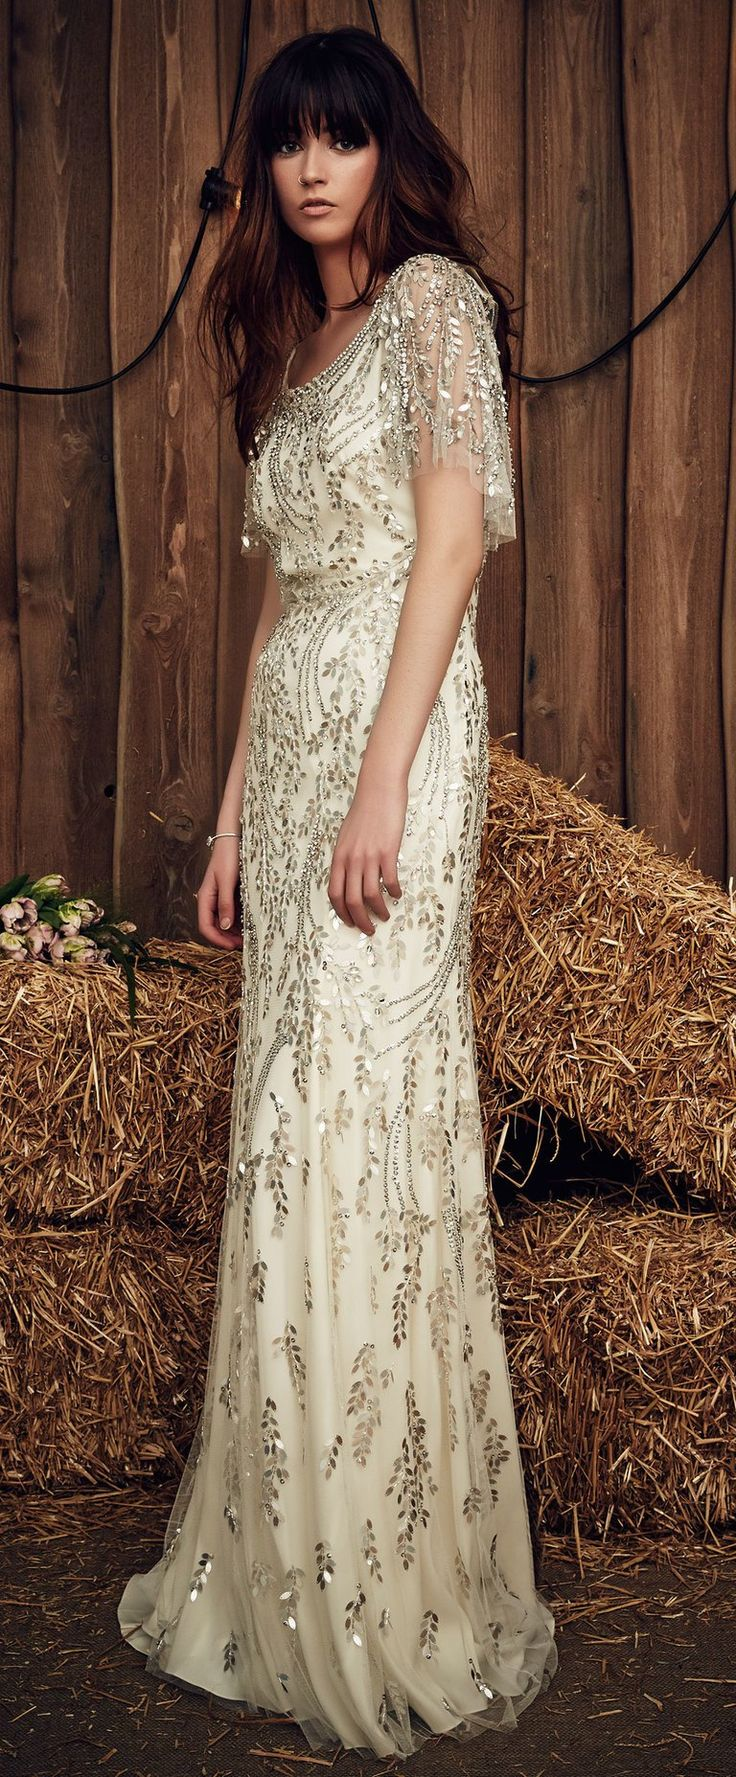 Jenny Packham Spring 2017 Hilda wedding dress with a rosemary-shaped leaf motif of appliqués from the scoop neck to the floor and fluttery, net sleeves covered in embellishment